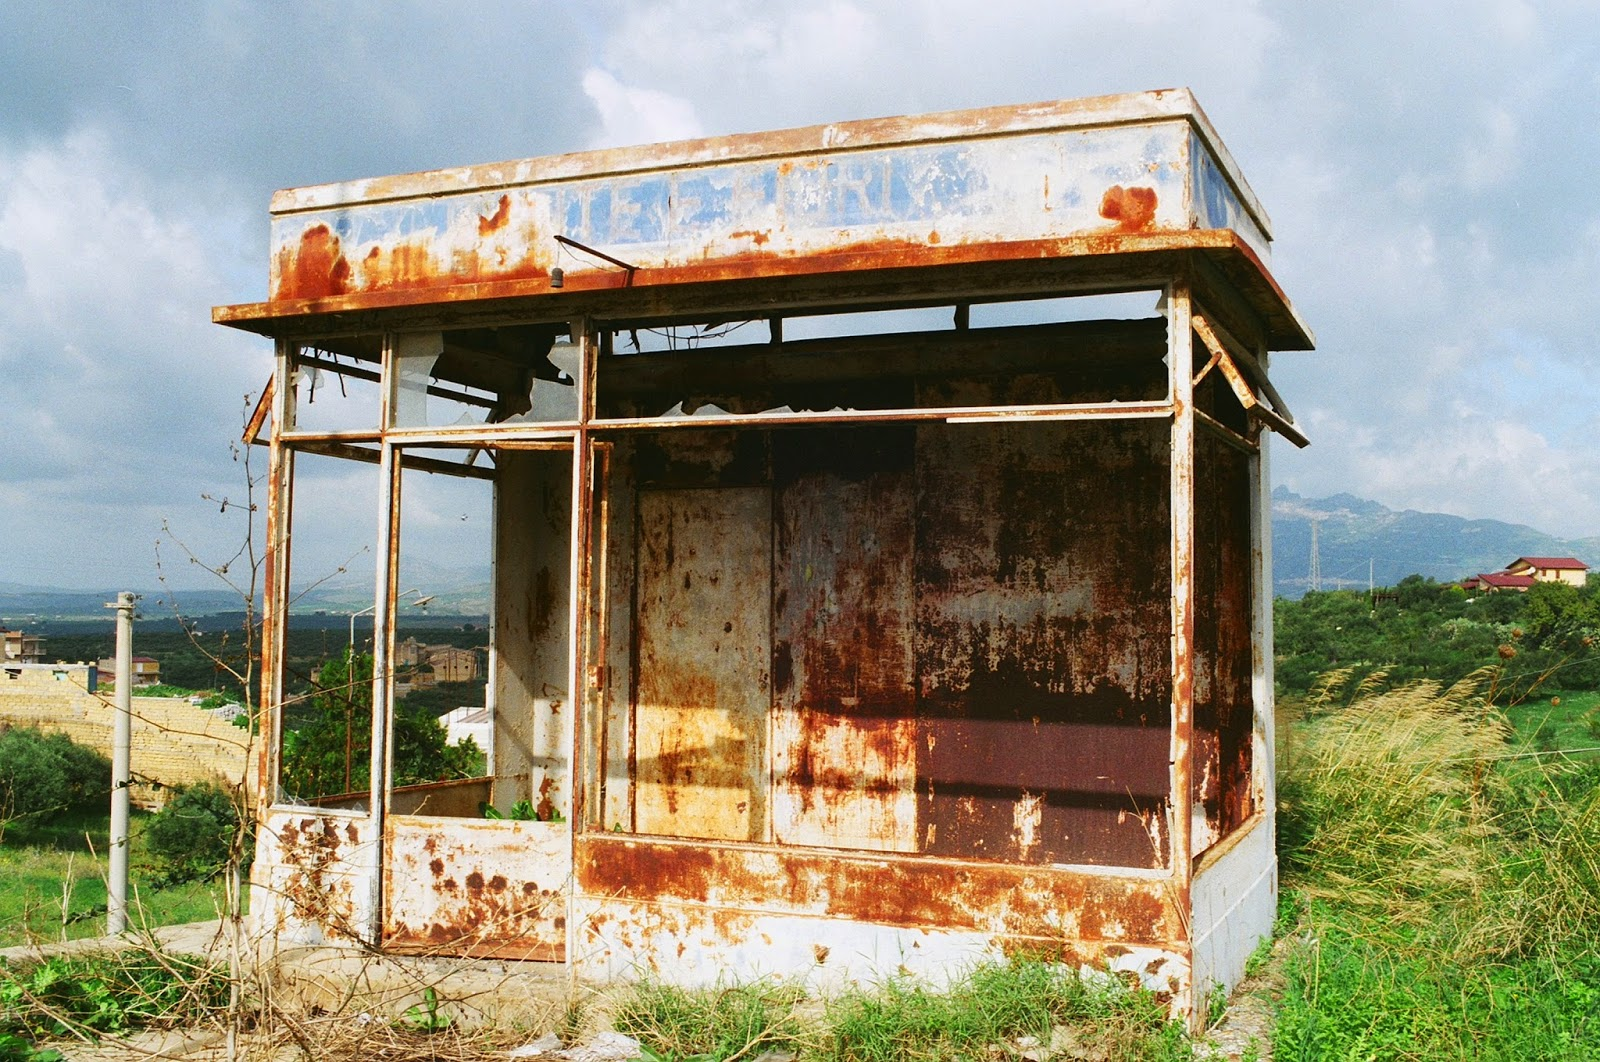 DERELICTION, SHELTER, ELEGANT DECAY, KIOSK, NEWS STANDS, SICILY, RIBERA, AGRIGENTO, © VISUAL ATHLETICS CLUB, 100 DAYS 4 MILLION CONVERSATIONS, 2015 GENERAL ELECTION